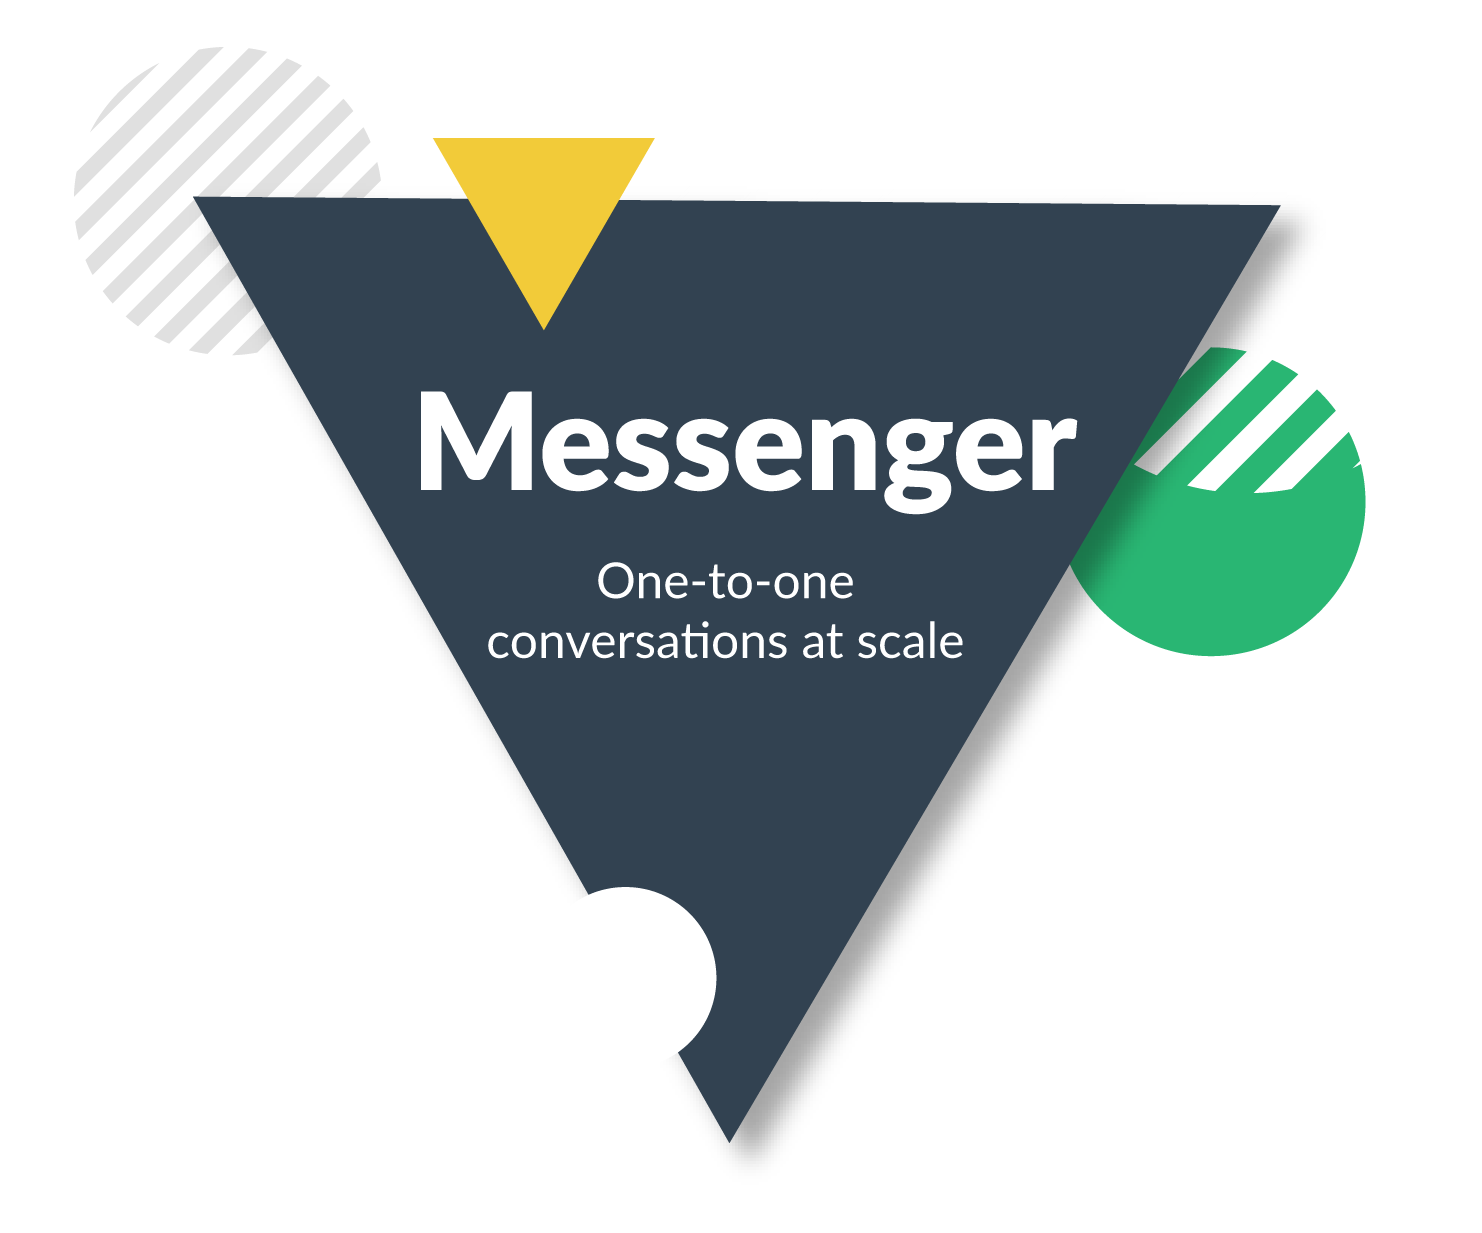 Messenger Graphic